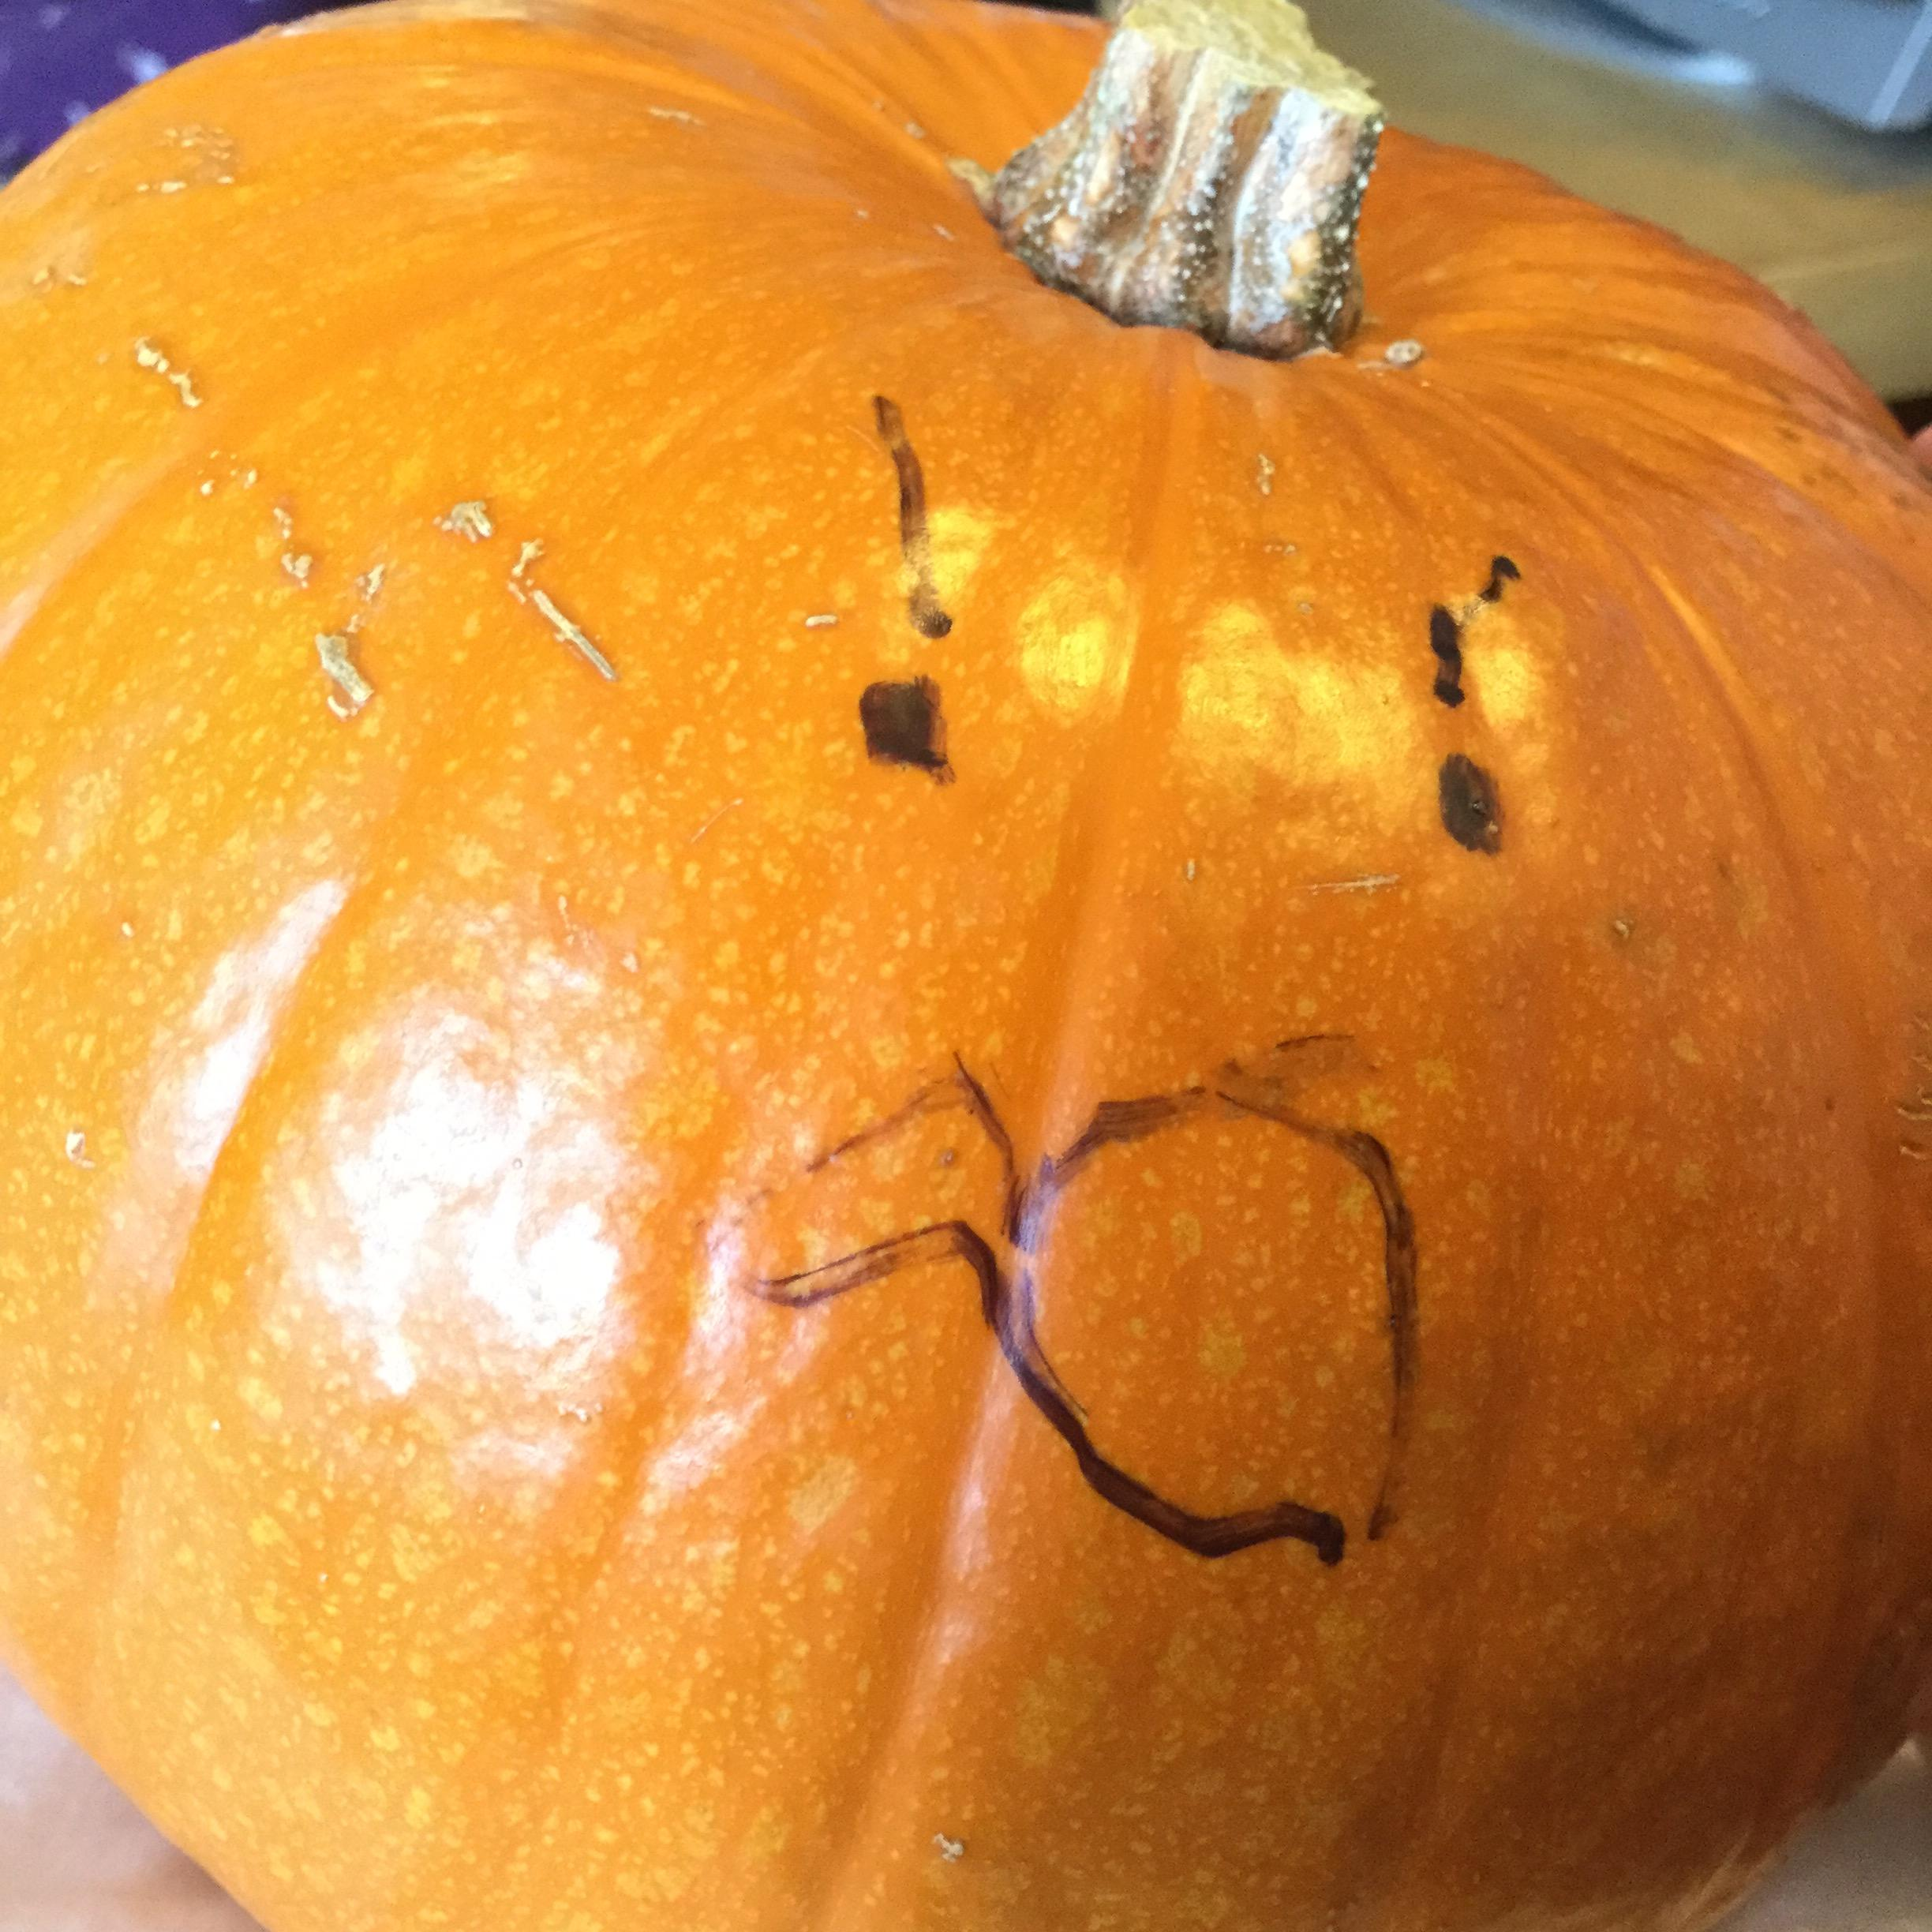 Drawn pumpkin bad Album drawn with Pumpkin by